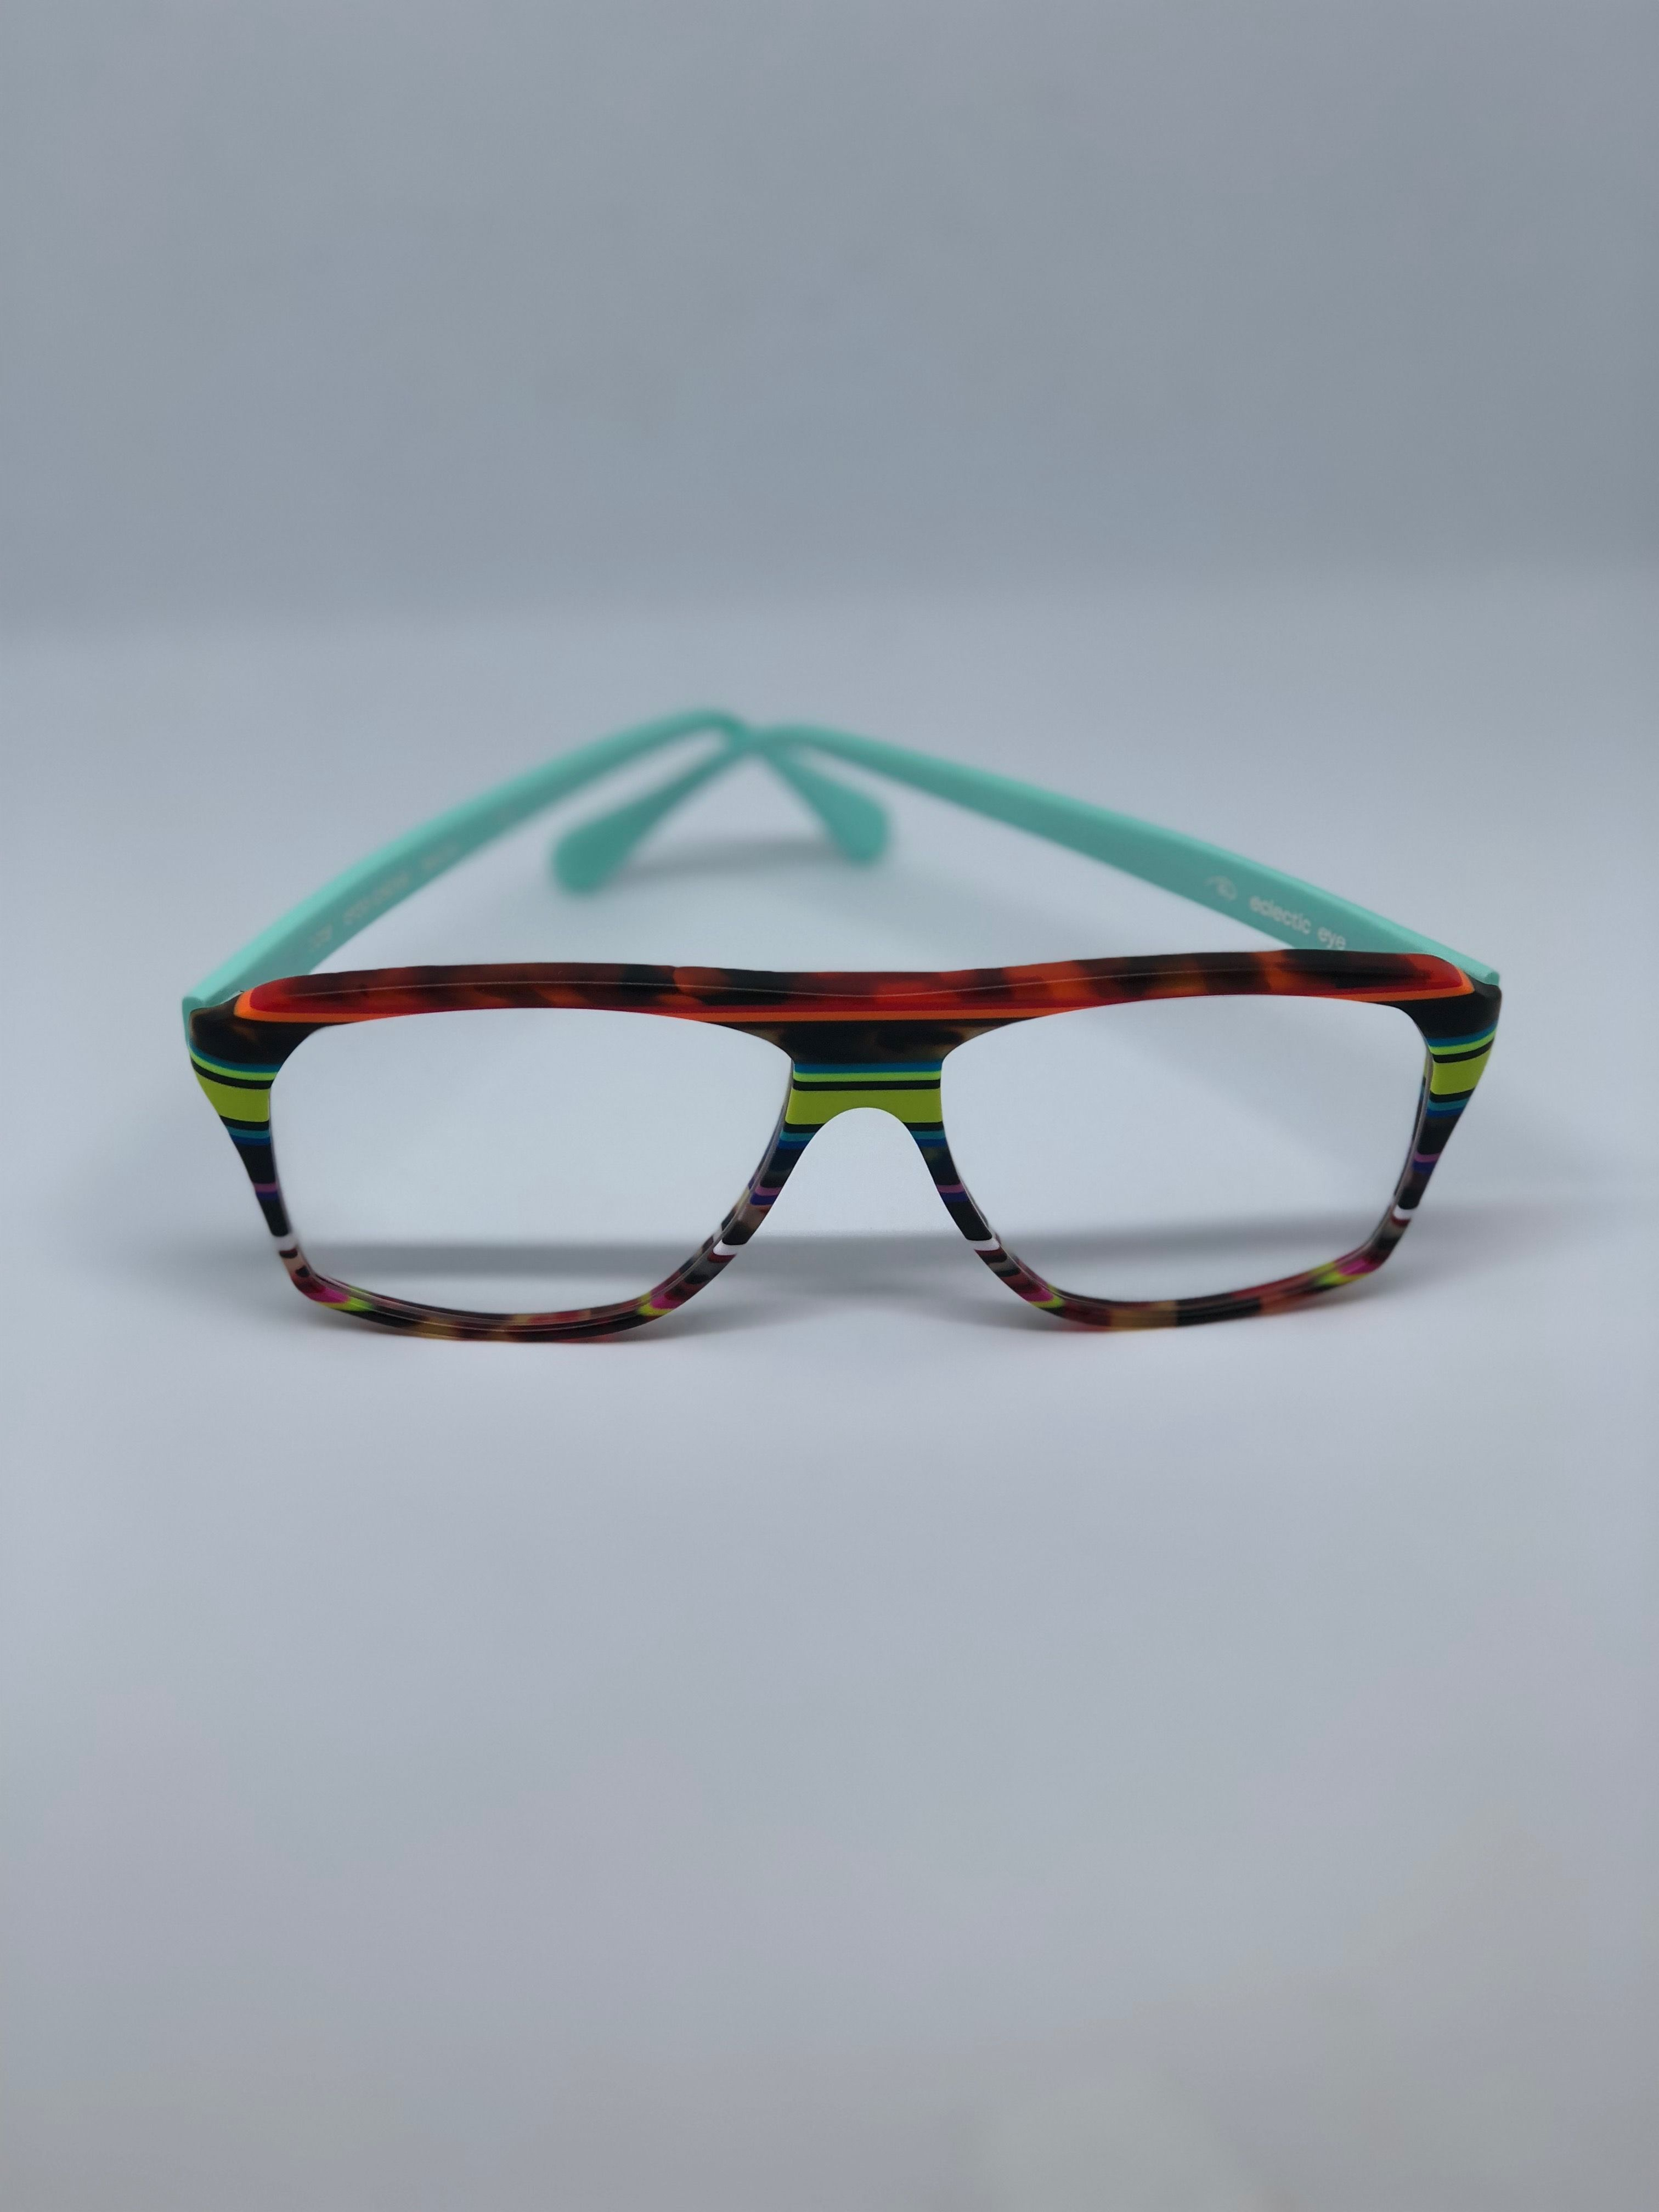 9031488700 We are excited to announce that you can now purchase Eclectic Eyewear by  Wissing at our